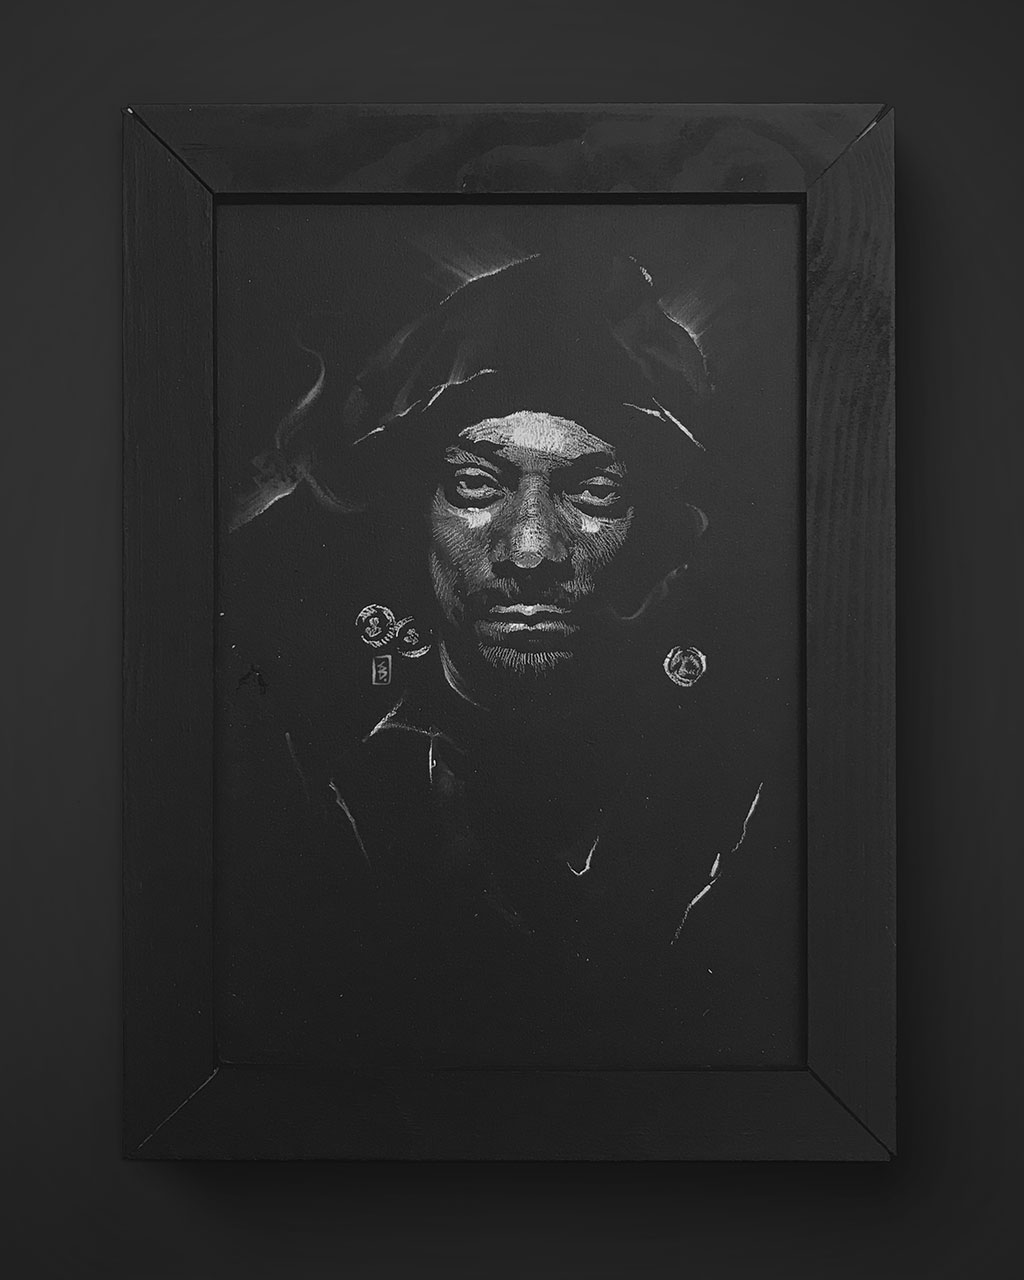 Snoop Dogg - Original Drawing